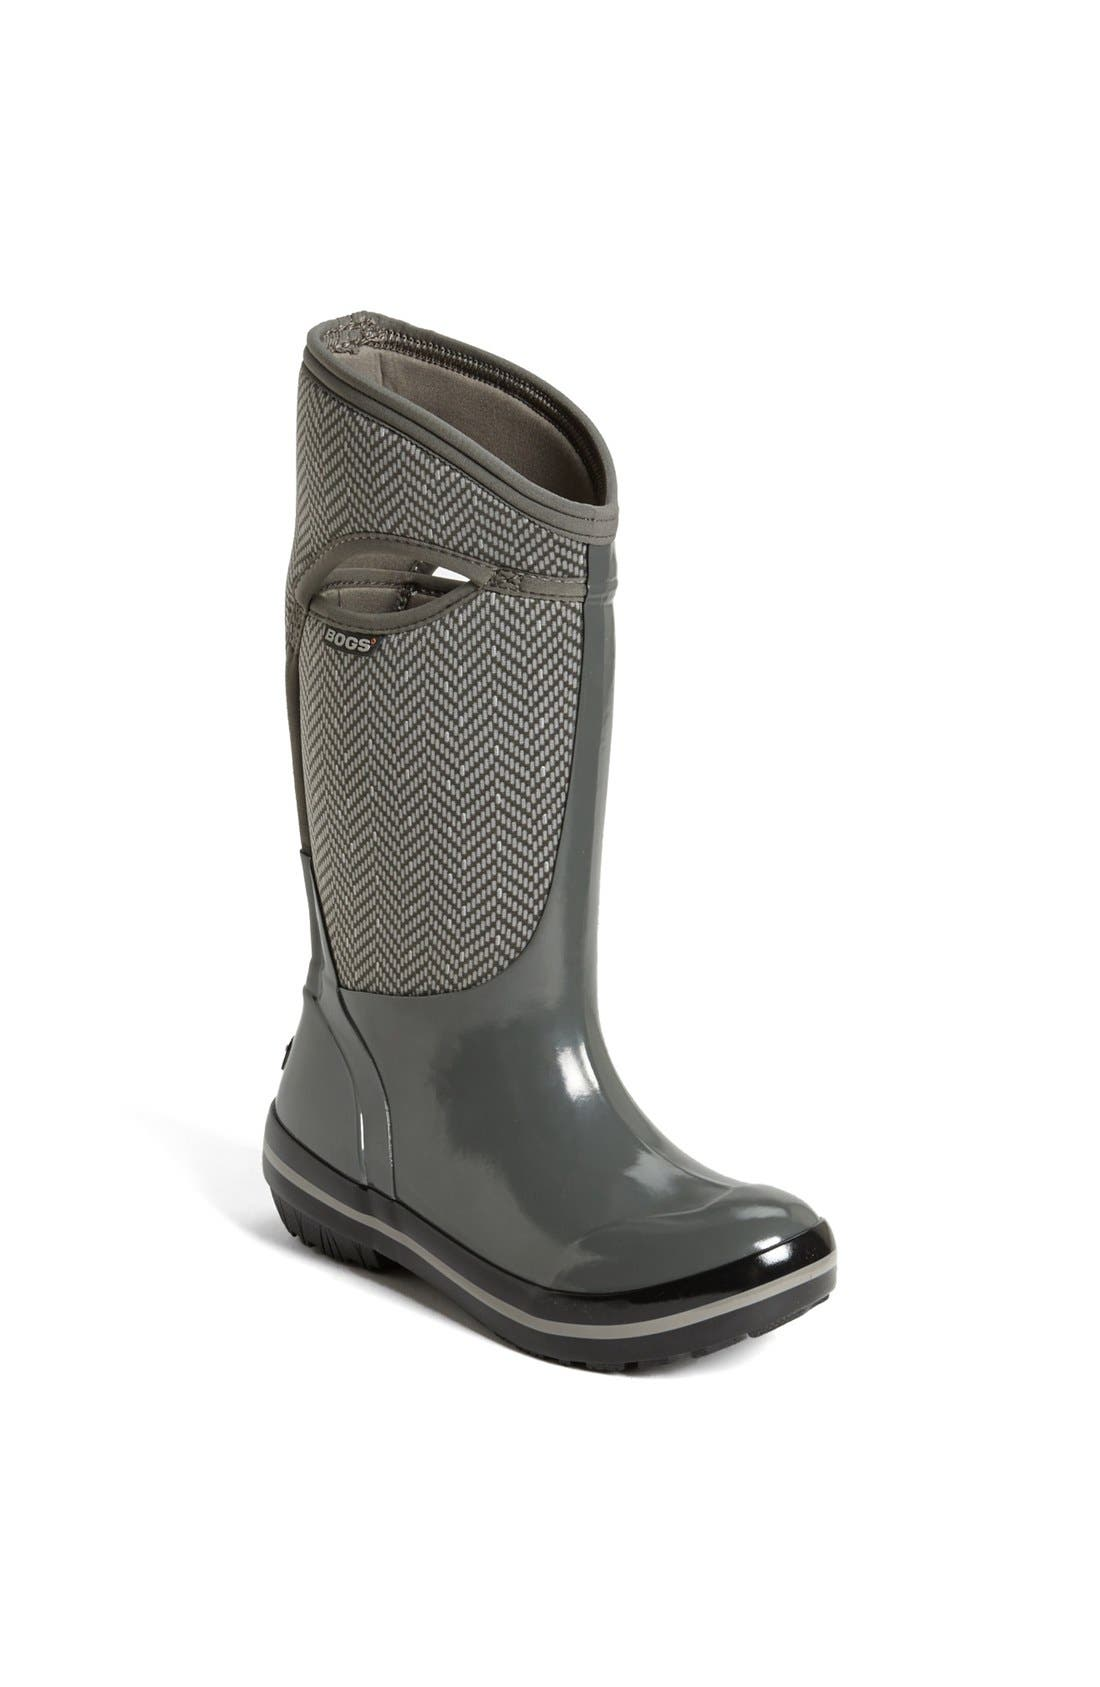 Alternate Image 1 Selected - Bogs 'Plimsoll' Tall Rain Boot (Women)